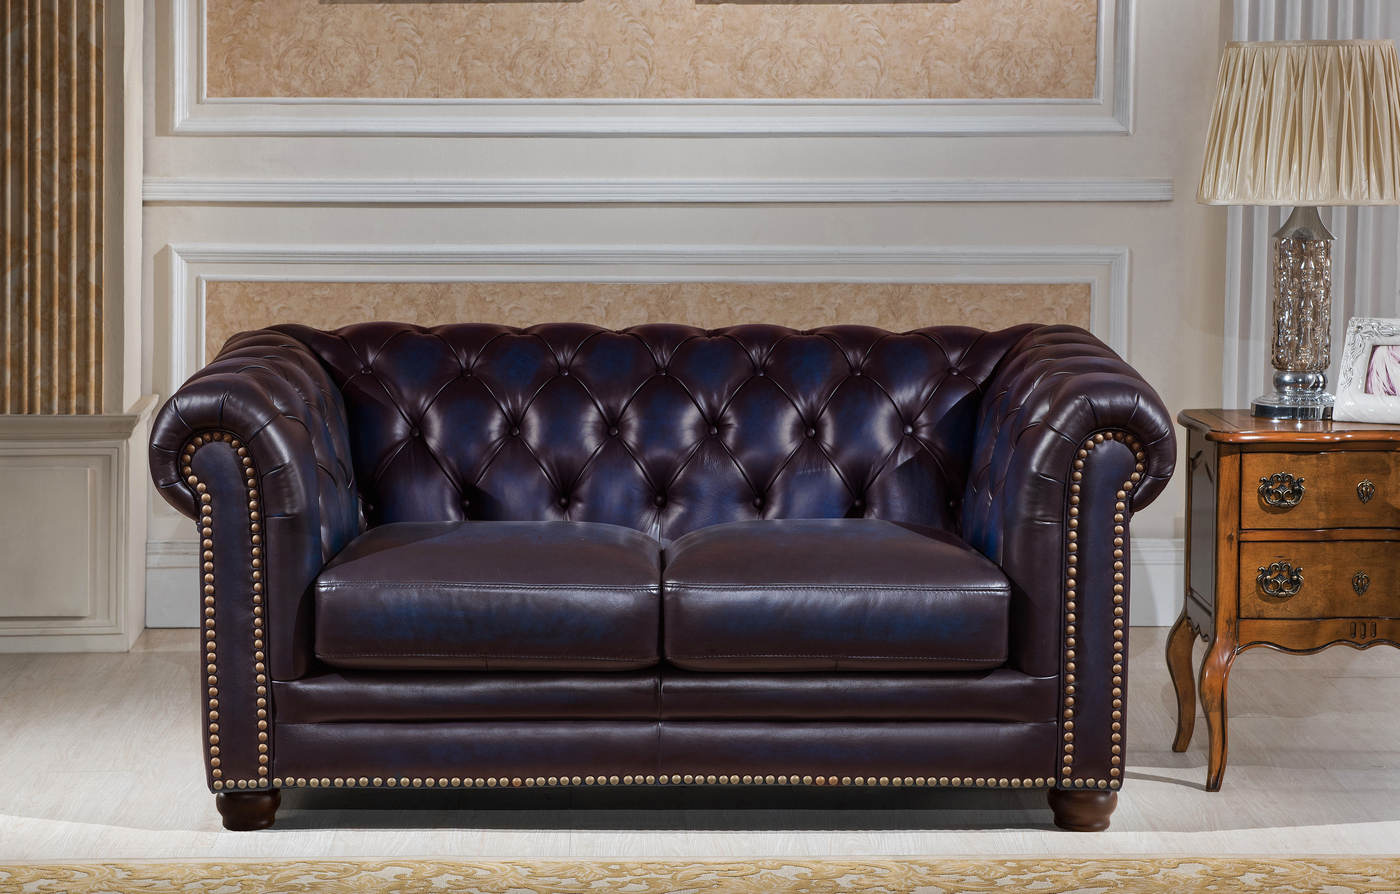 navy leather chesterfield sofa reception sofas dynasty 100 genuine 3 pc set in